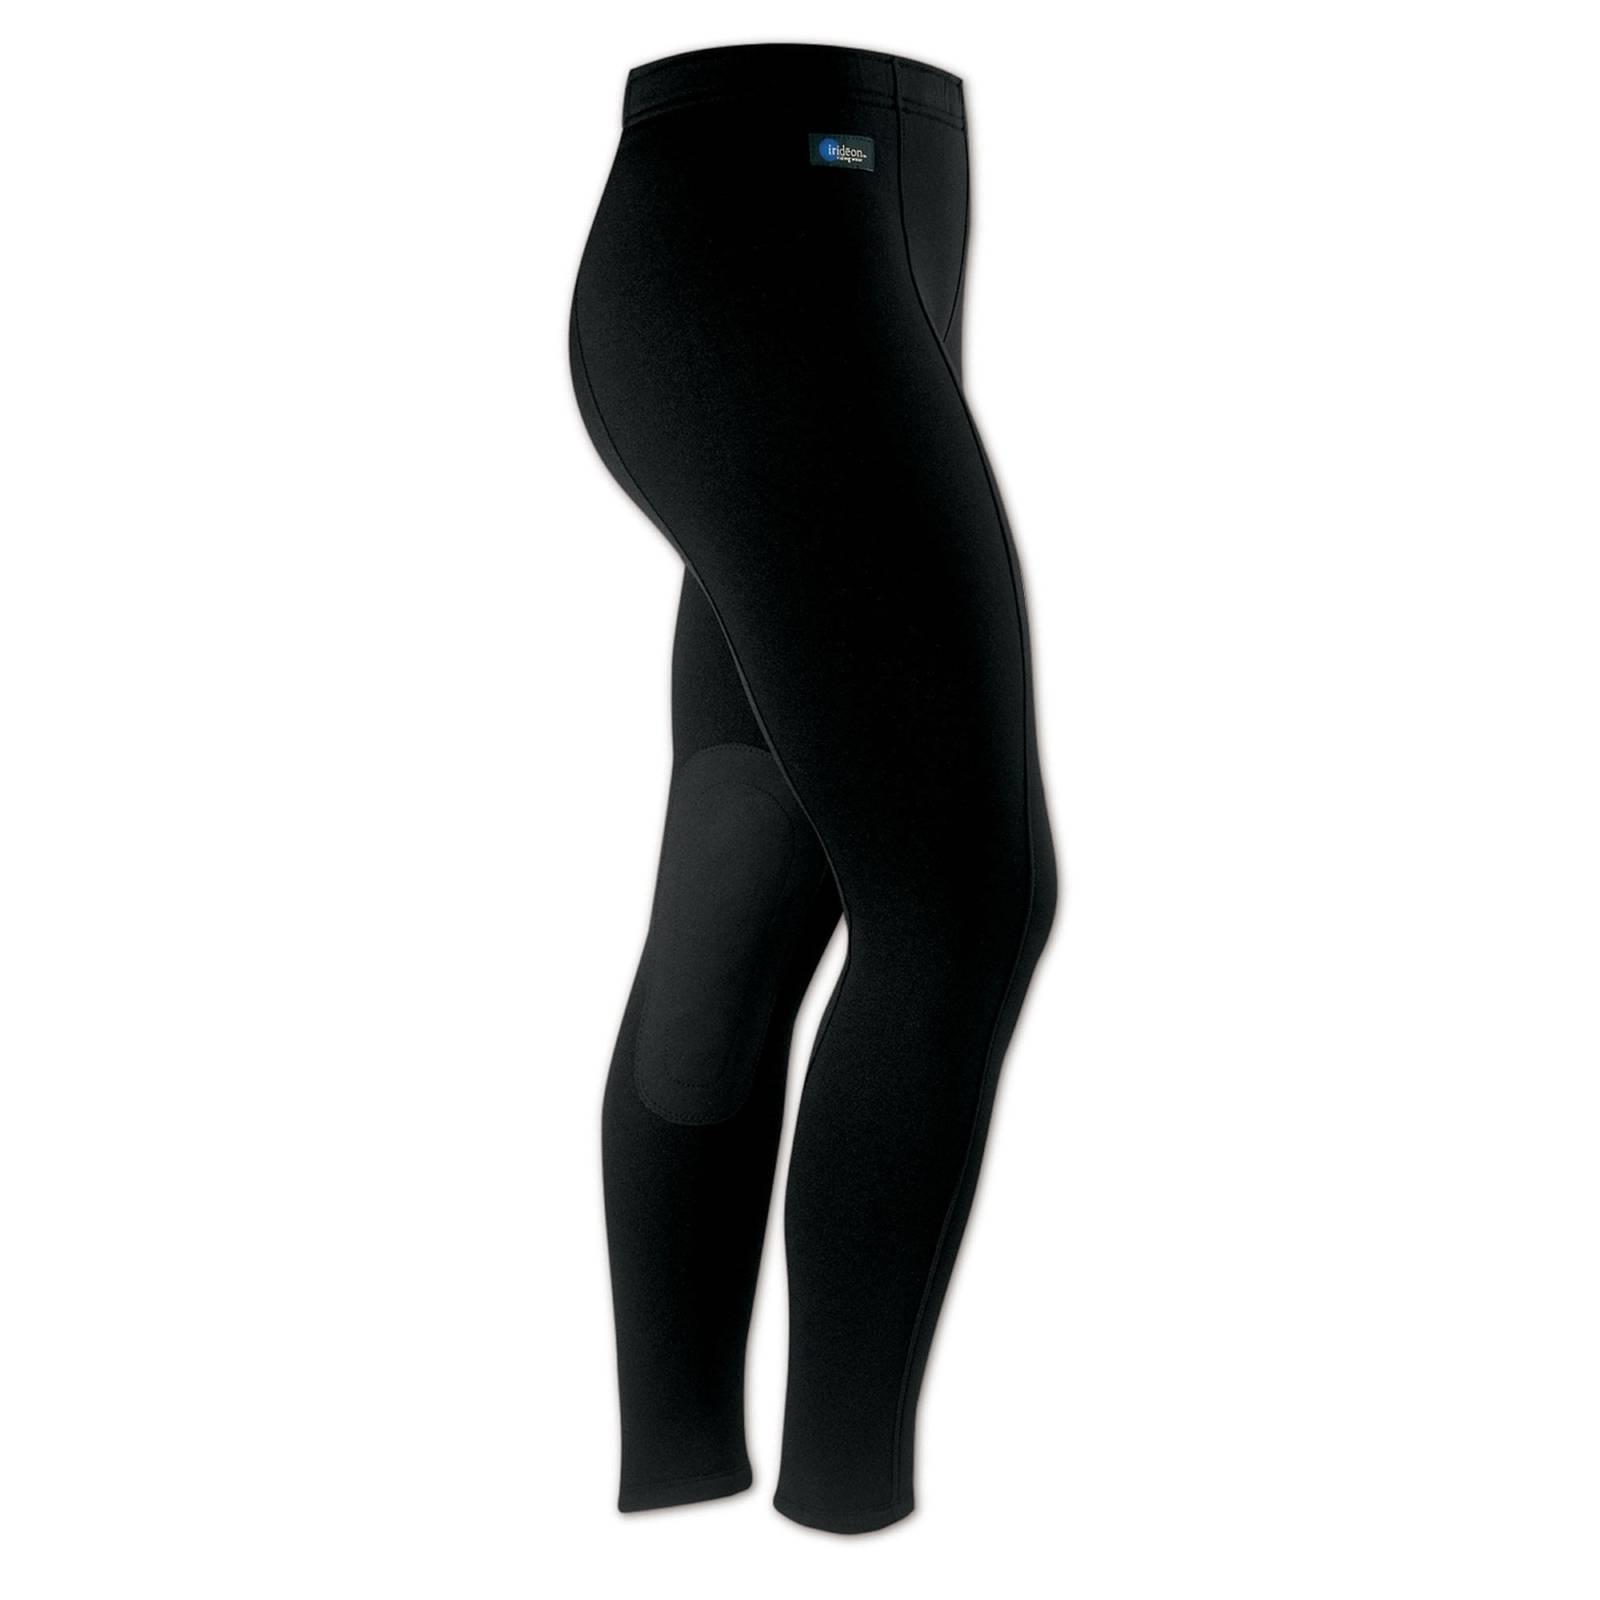 Outlet - Irideon Ladies Power Stretch Breeches - Knee Patch, 1X Regular, Black